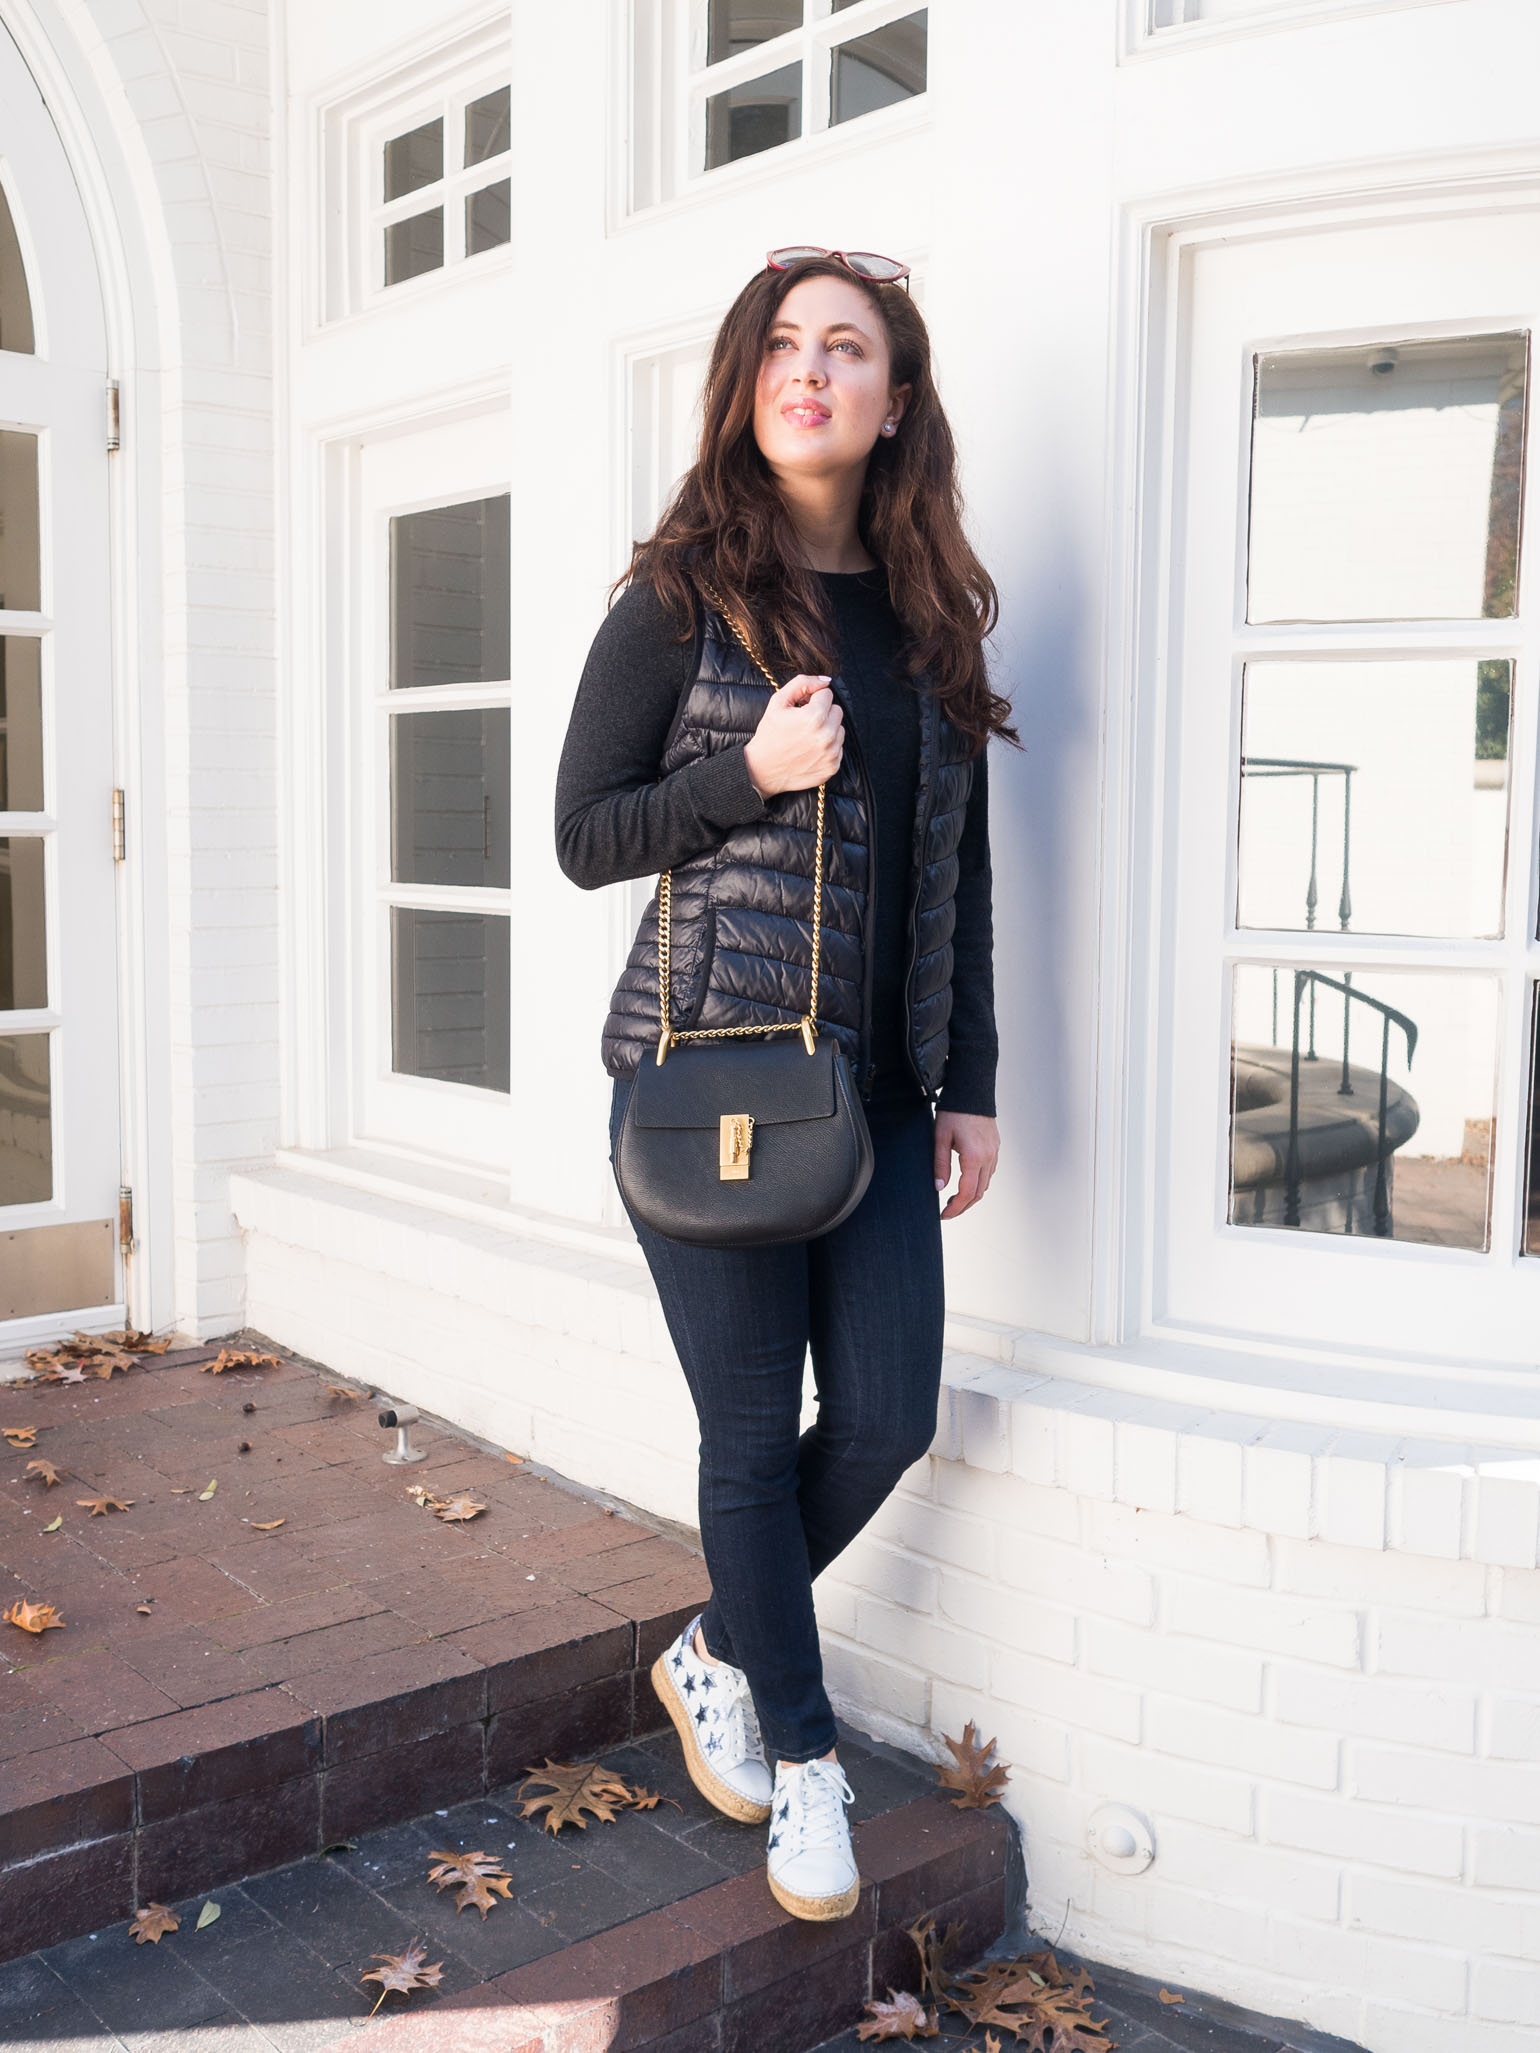 Dallas fashion bloggers hares her athleisure weekend style